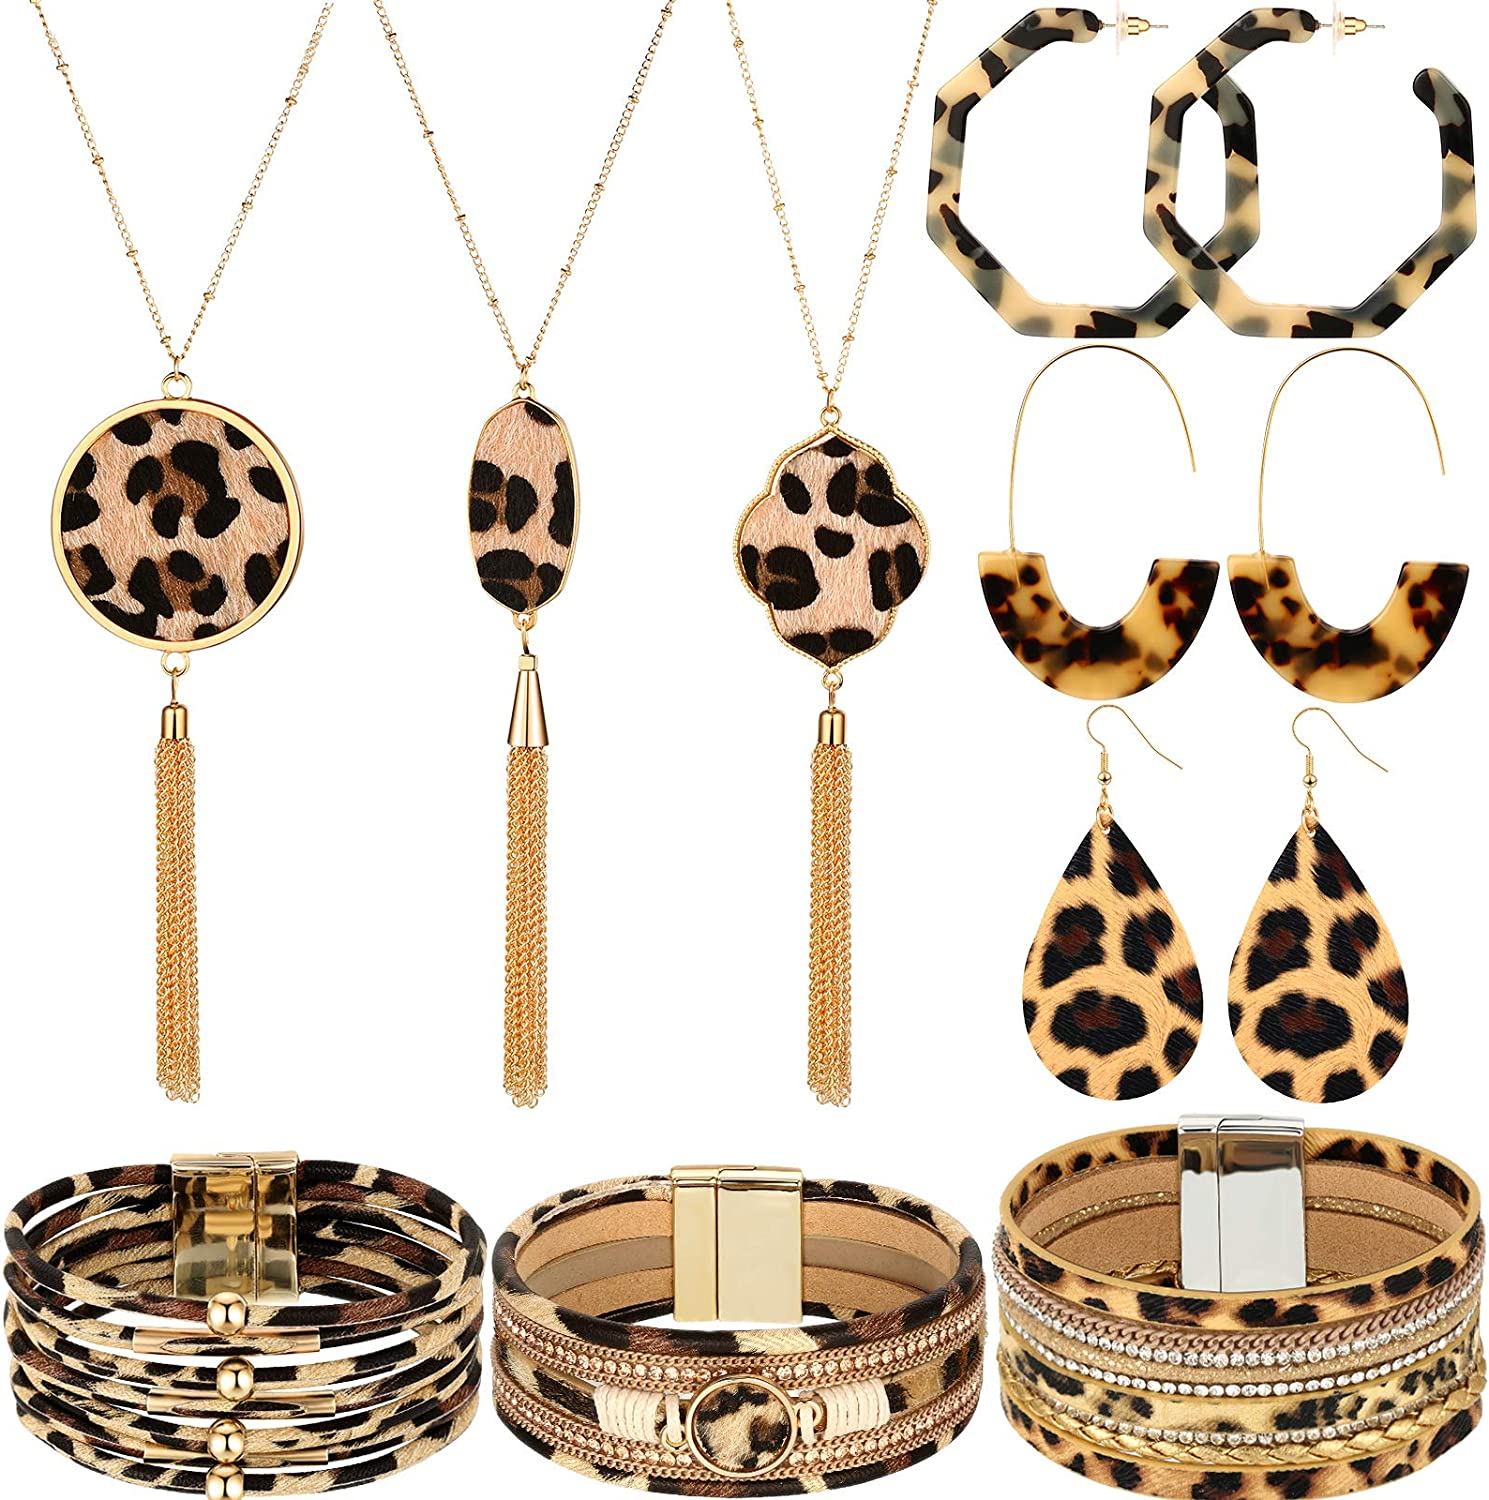 Yaomiao 9 Pieces Leopard Print Jewelry Set Leopard Leather Bracelets Dangle Earrings and Necklaces for Women